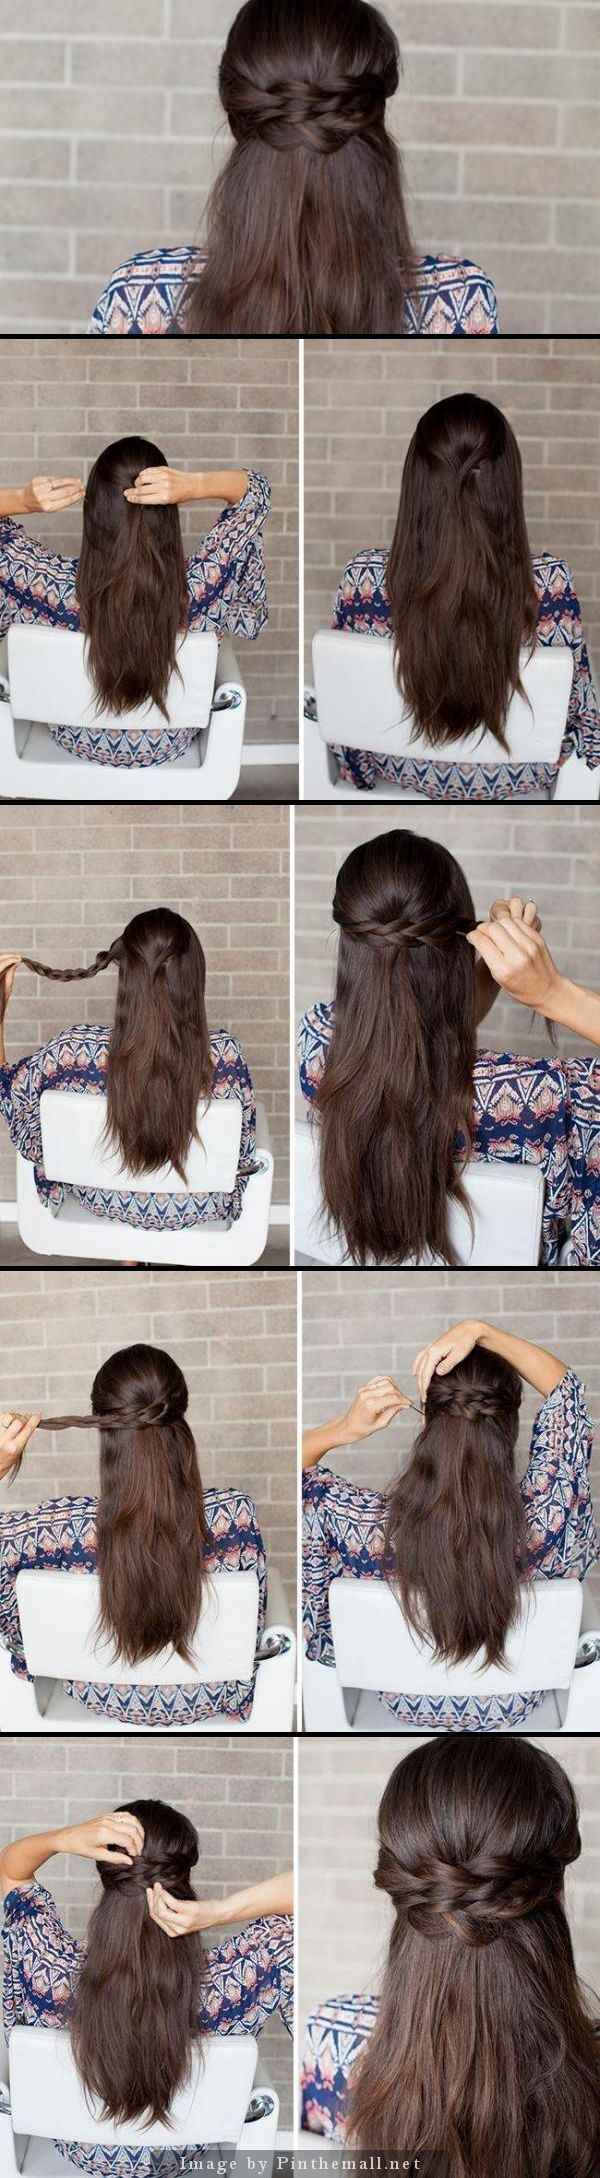 This style can work for any type of hair from short to long and